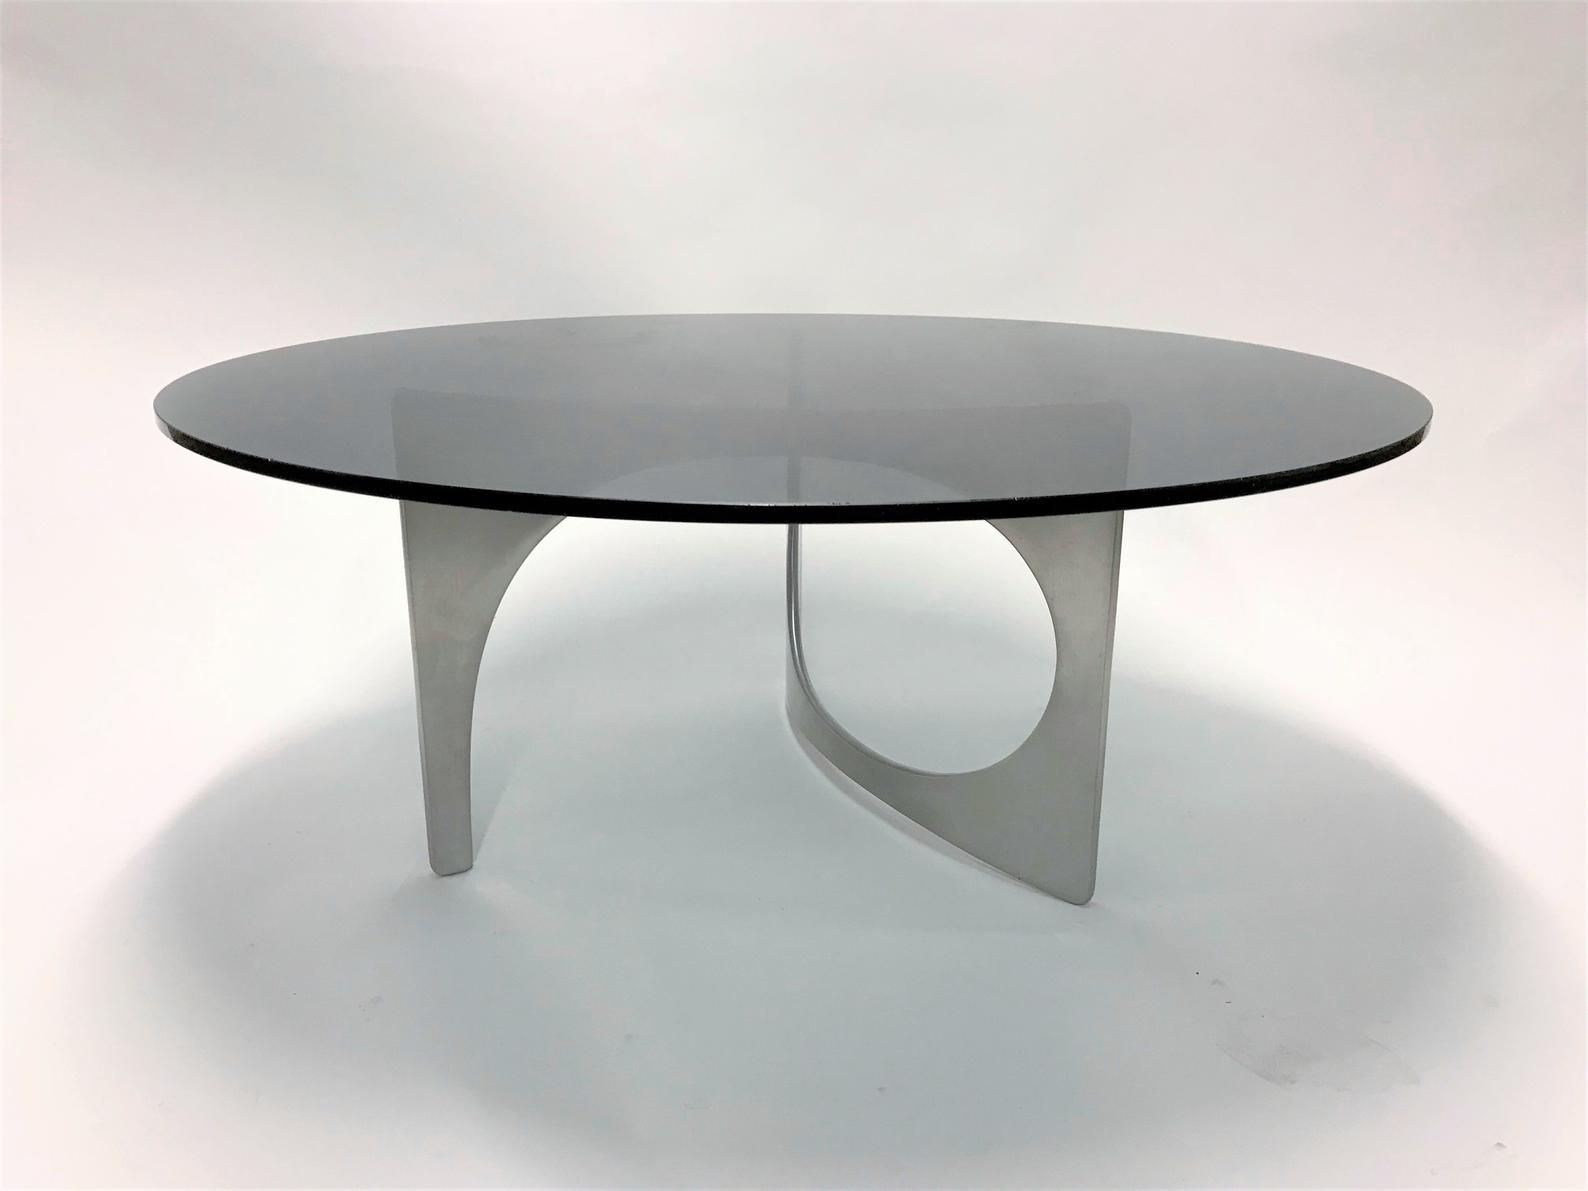 Vintage Sculptural Coffee Table By Knut Hesterberg 1960s Mid